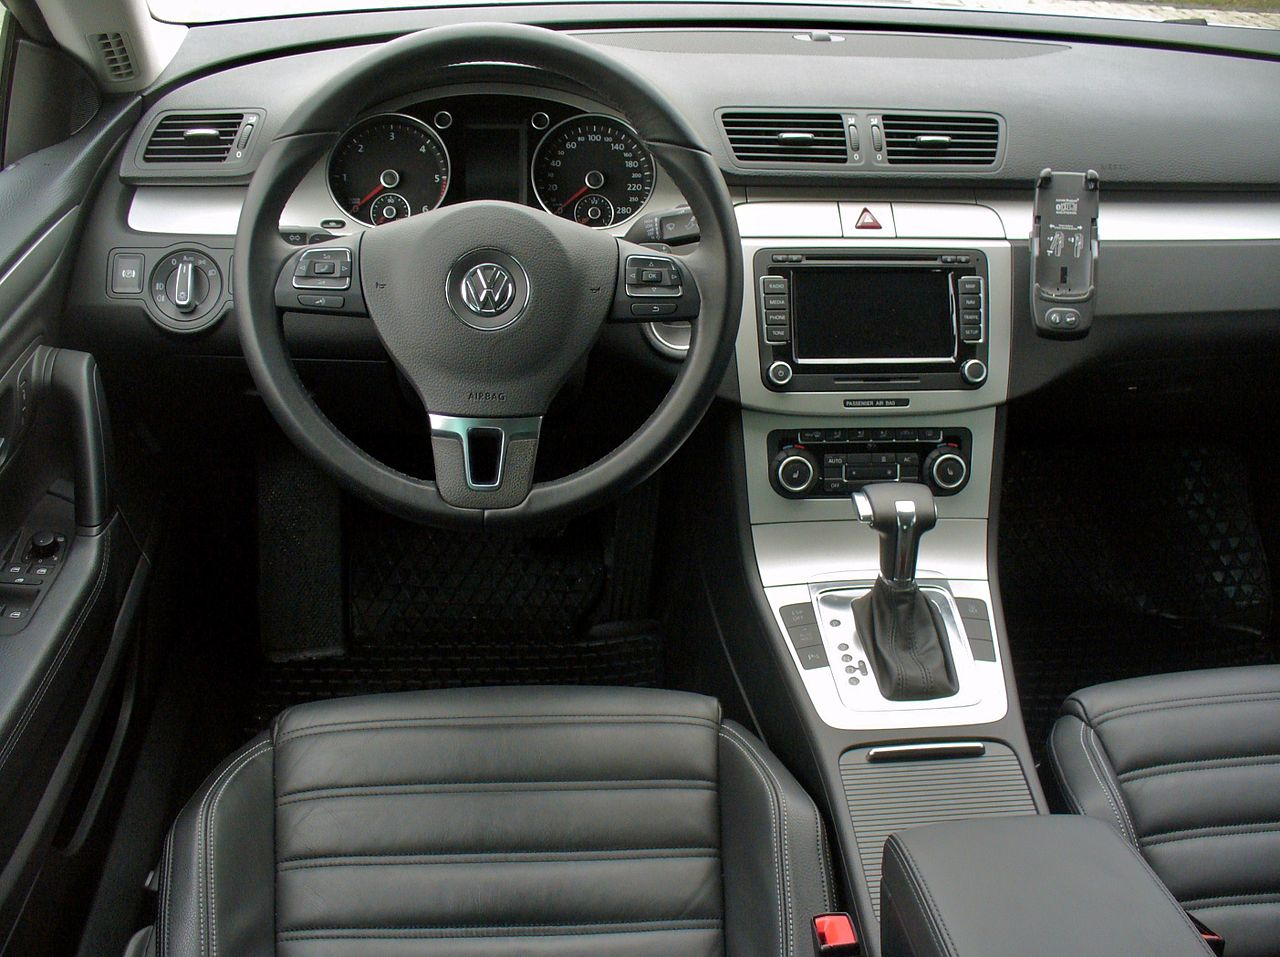 file vw passat cc 2 0 tdi dsg reflexsilber interieur jpg wikimedia commons. Black Bedroom Furniture Sets. Home Design Ideas